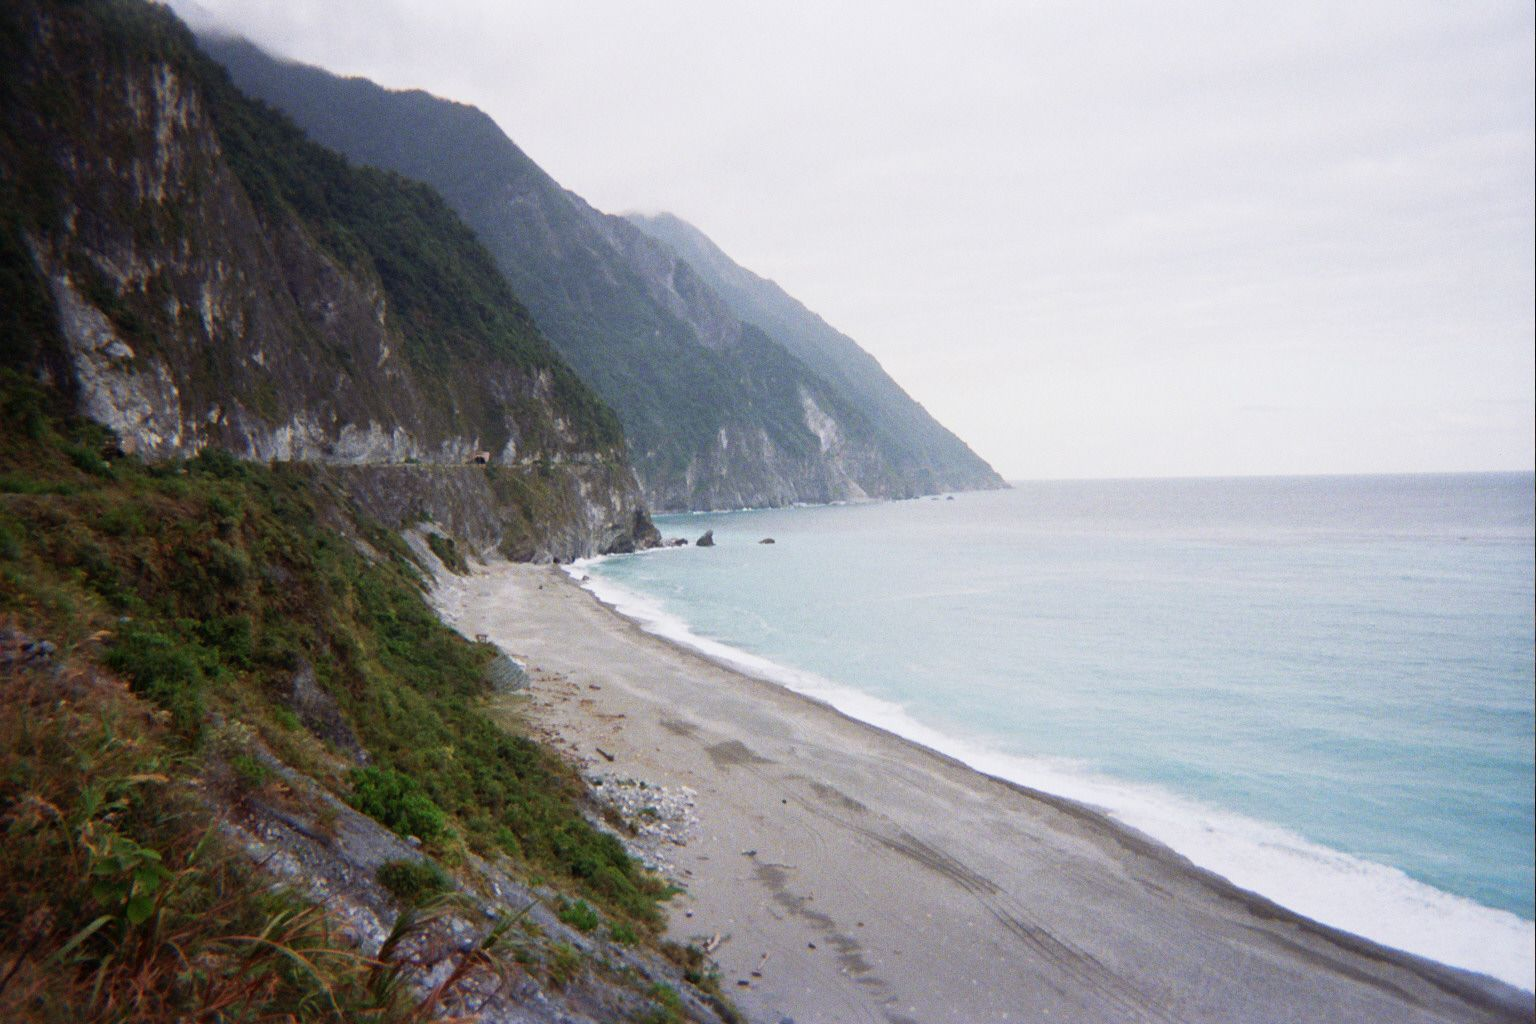 This is a shot near Hualian, Taiwan. There are a lot of